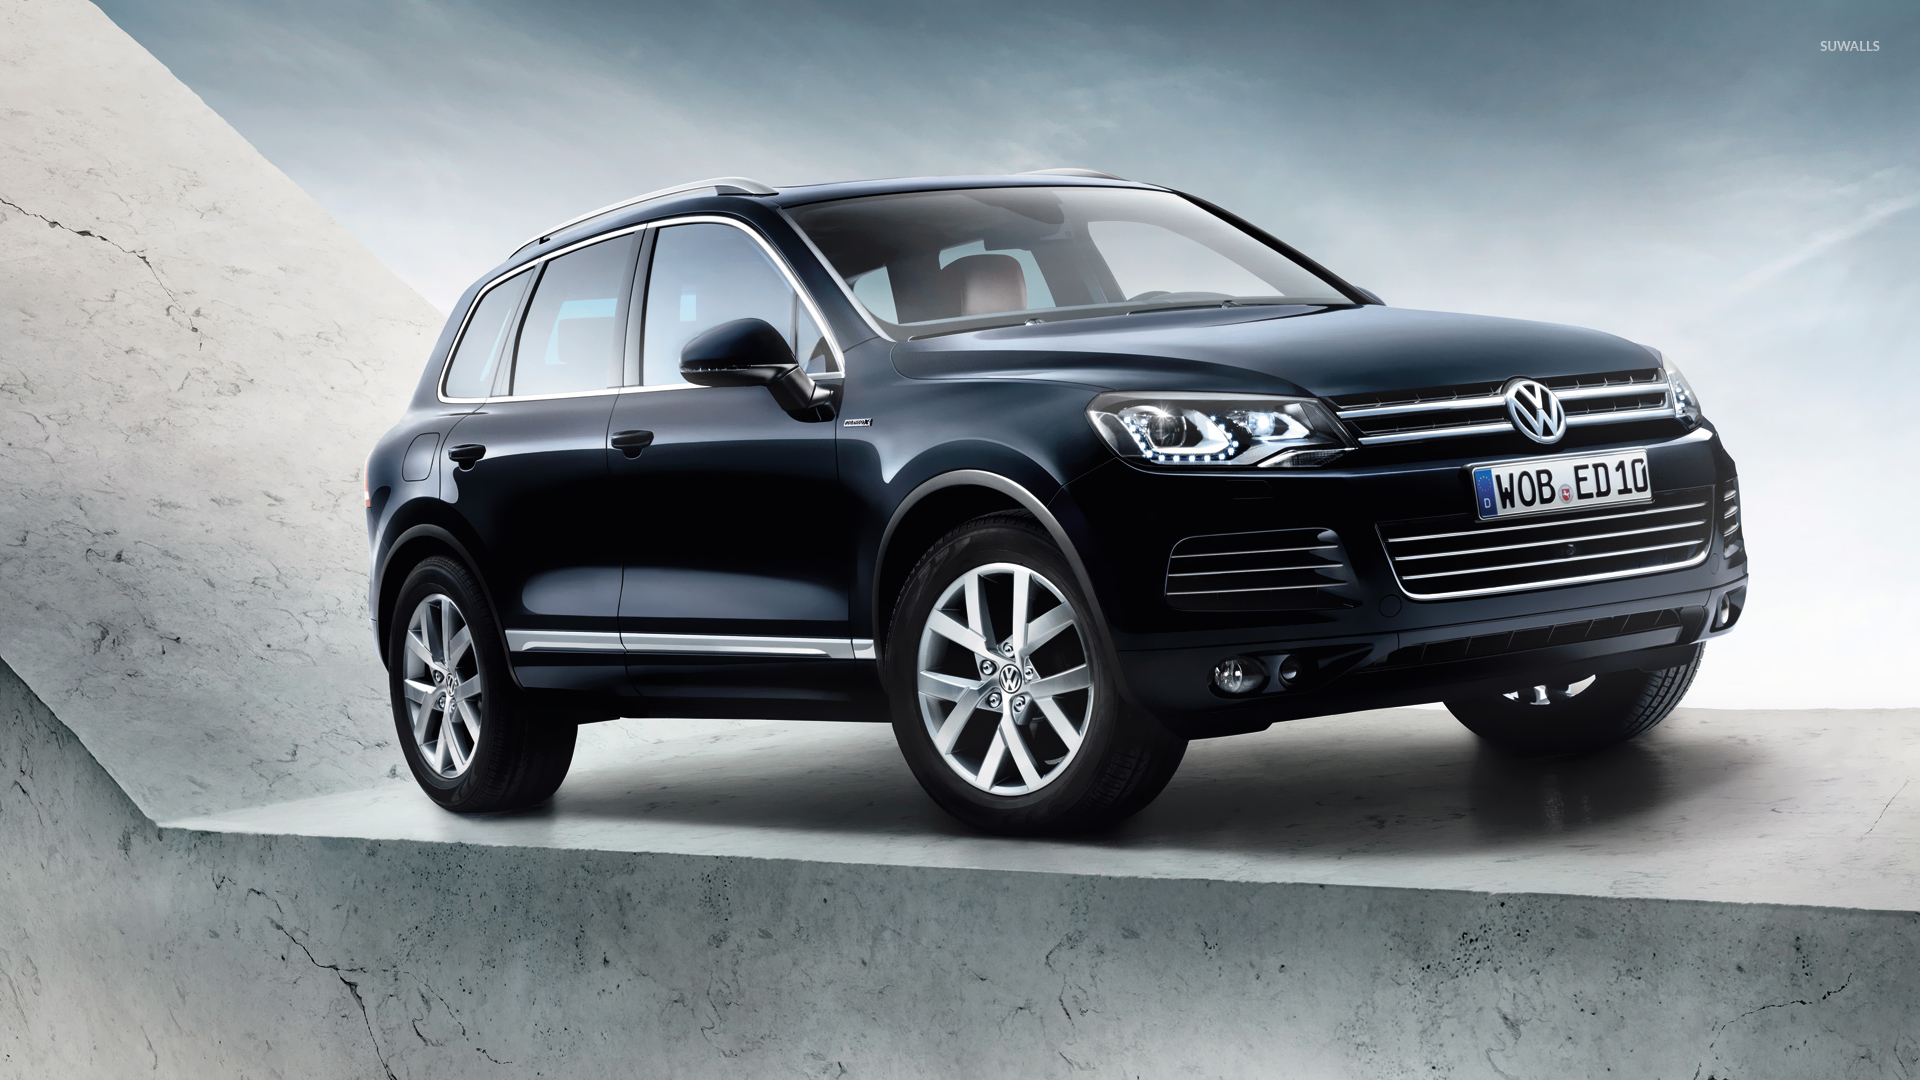 Volkswagen Touareg Wallpapers